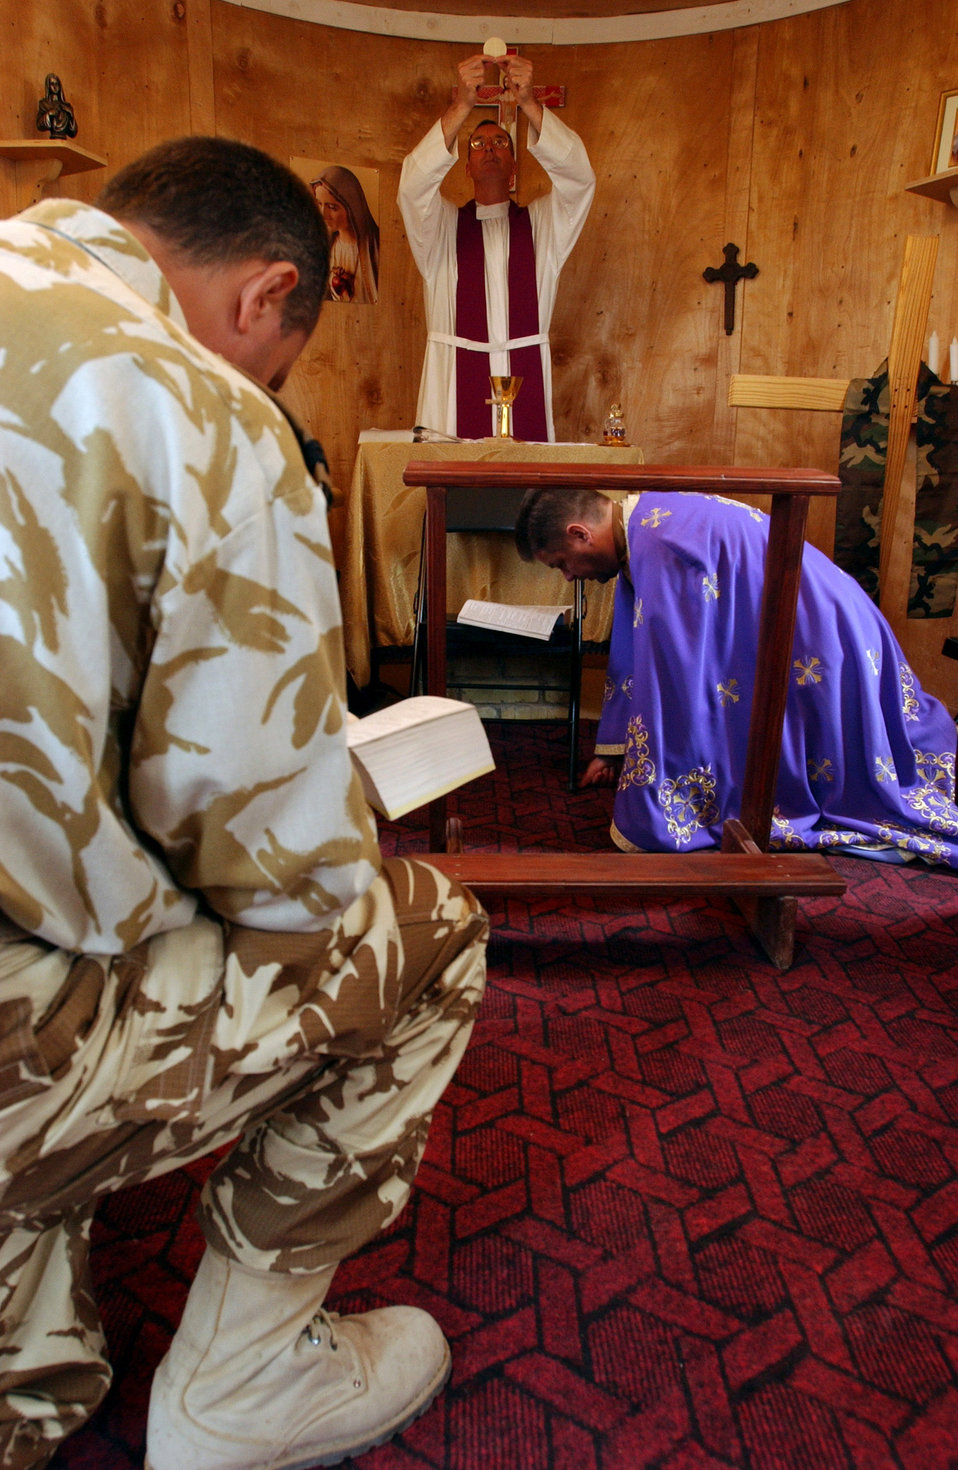 Air Force chaplain celebrates Mass for Romanians in Italian